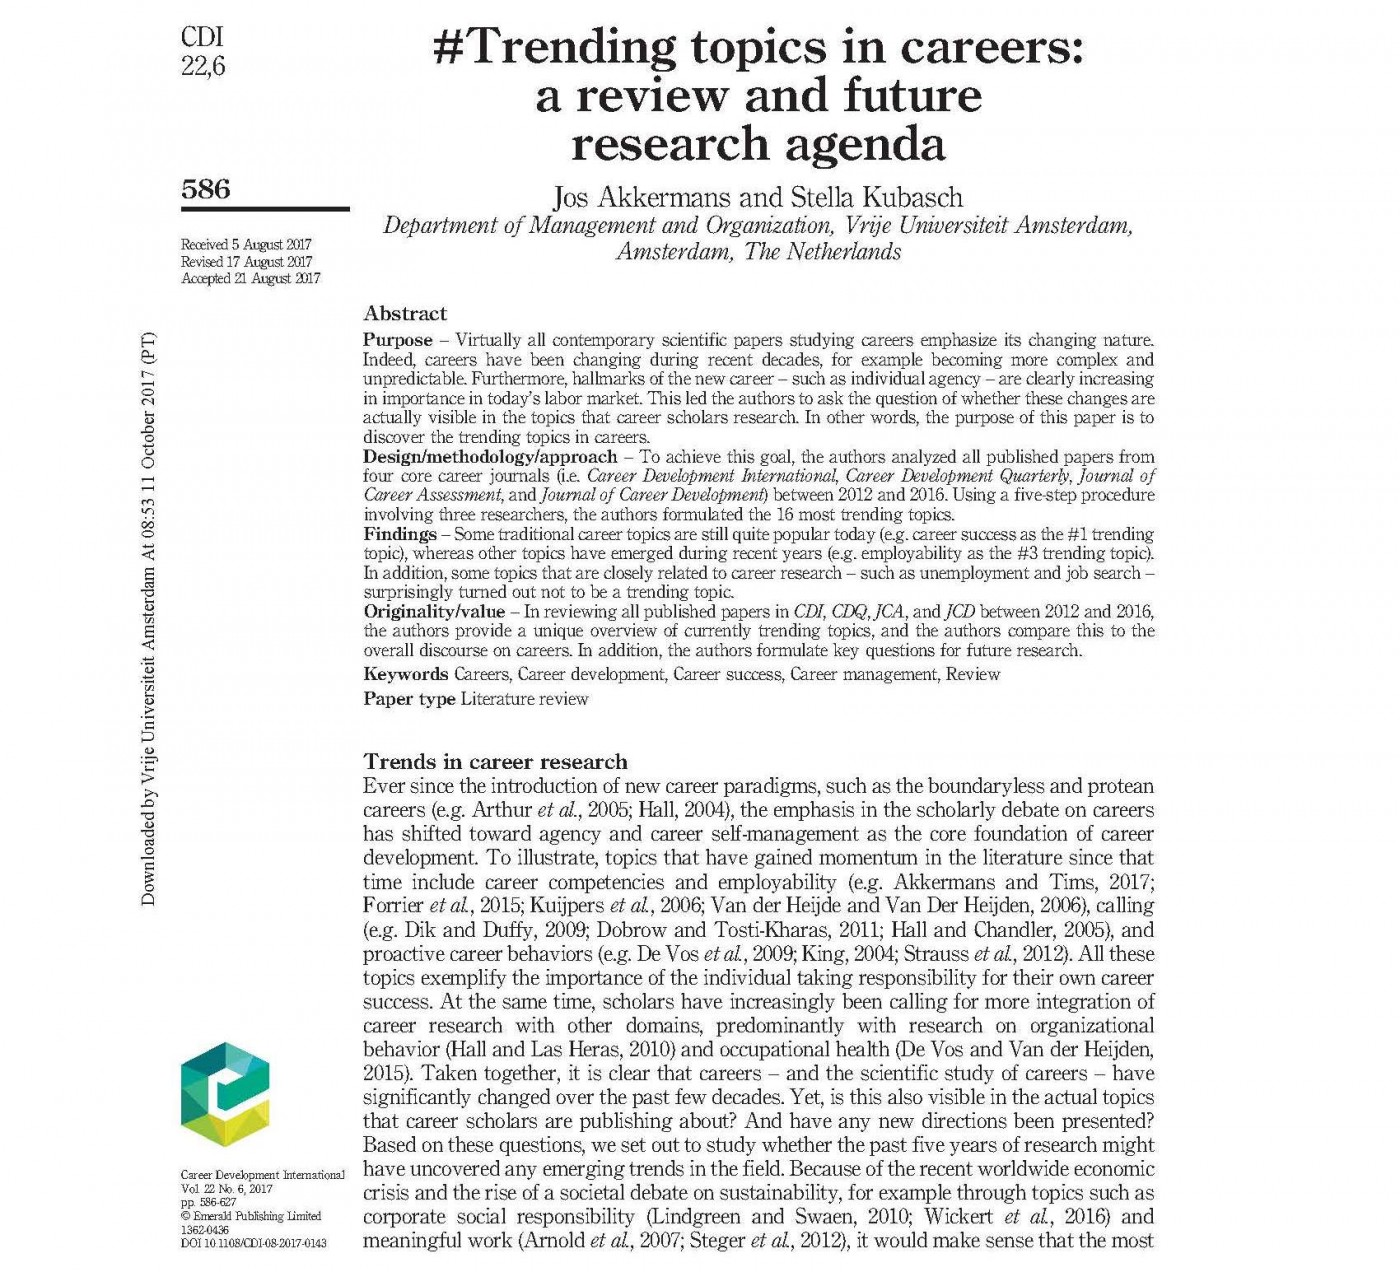 022 59e096d33a29650001209782 1620 20akkermans202620kubasch20201720 20trending20topics20in20careers Research Paper Topics For Impressive Papers Scientific High School Students In The Philippines 1400